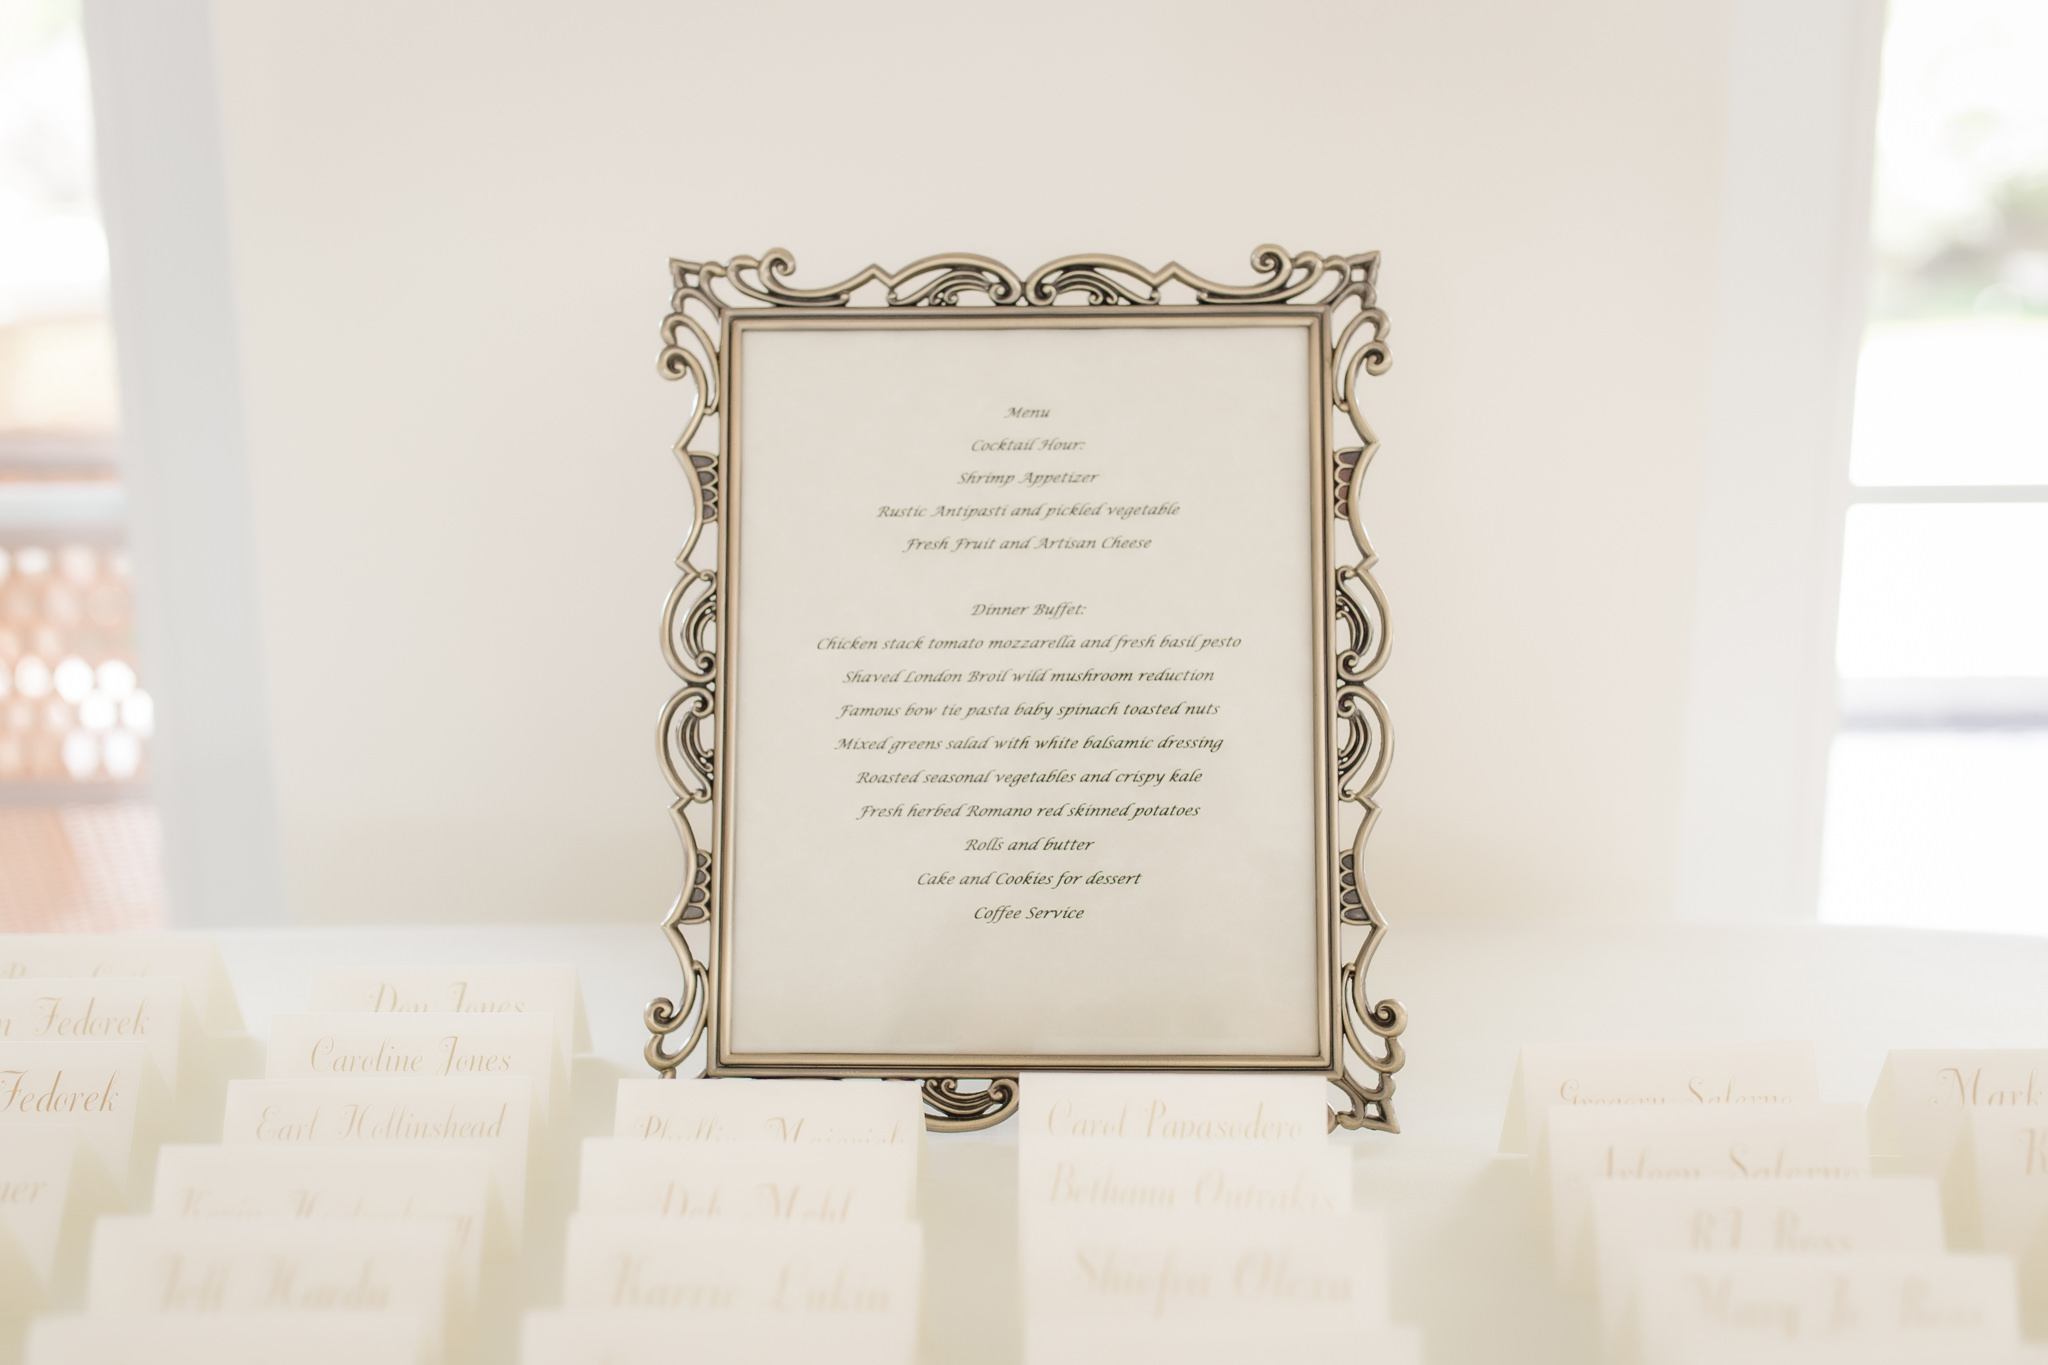 Framed list of the menu at a wedding reception at Greystone Fields